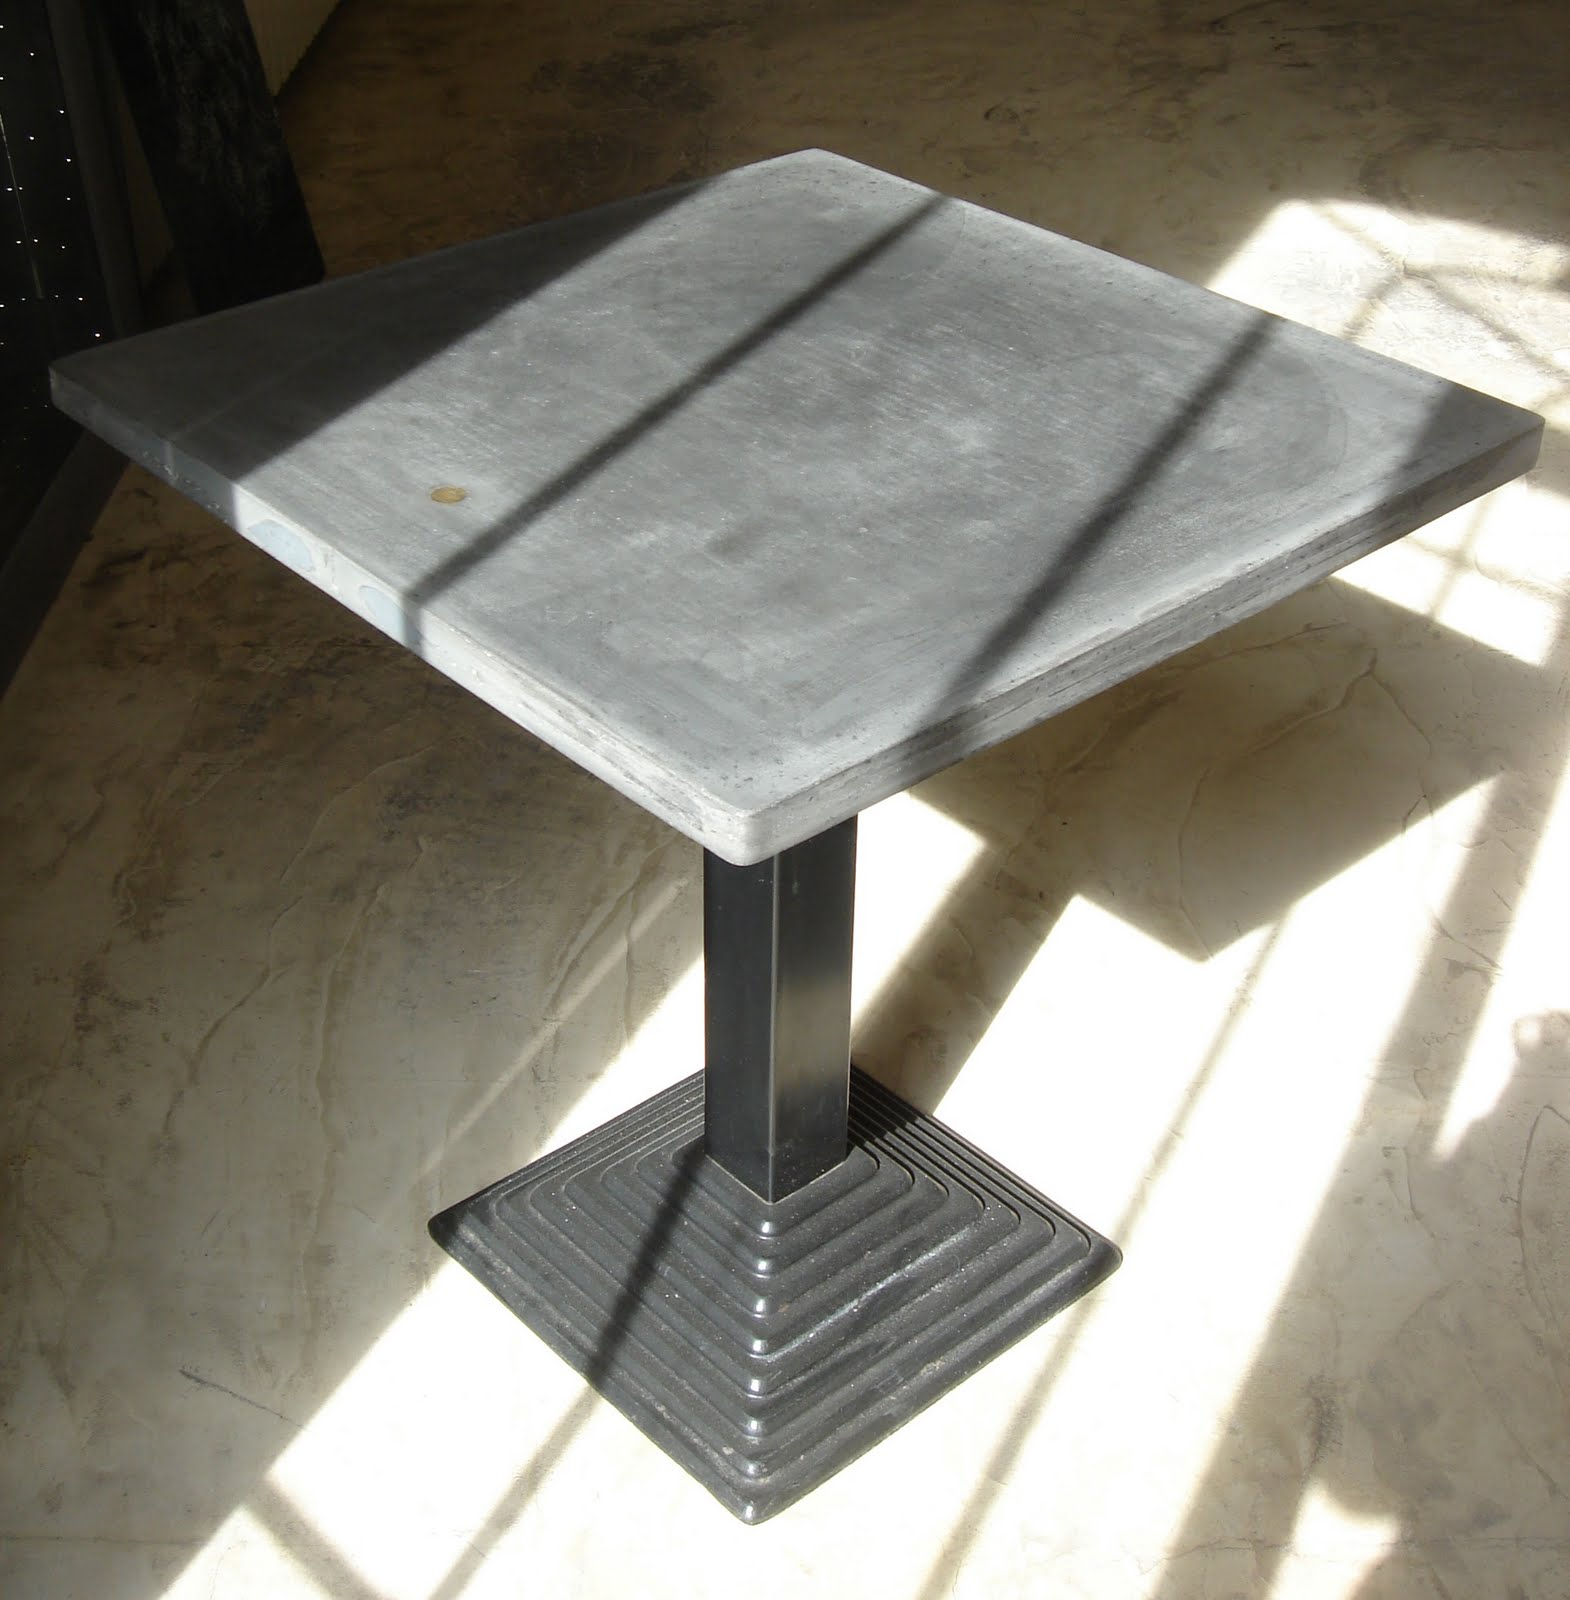 Table Bistrot Pied Fonte T And M Beton Design Table Bistrot Quot Pied Vintage Quot En Fonte